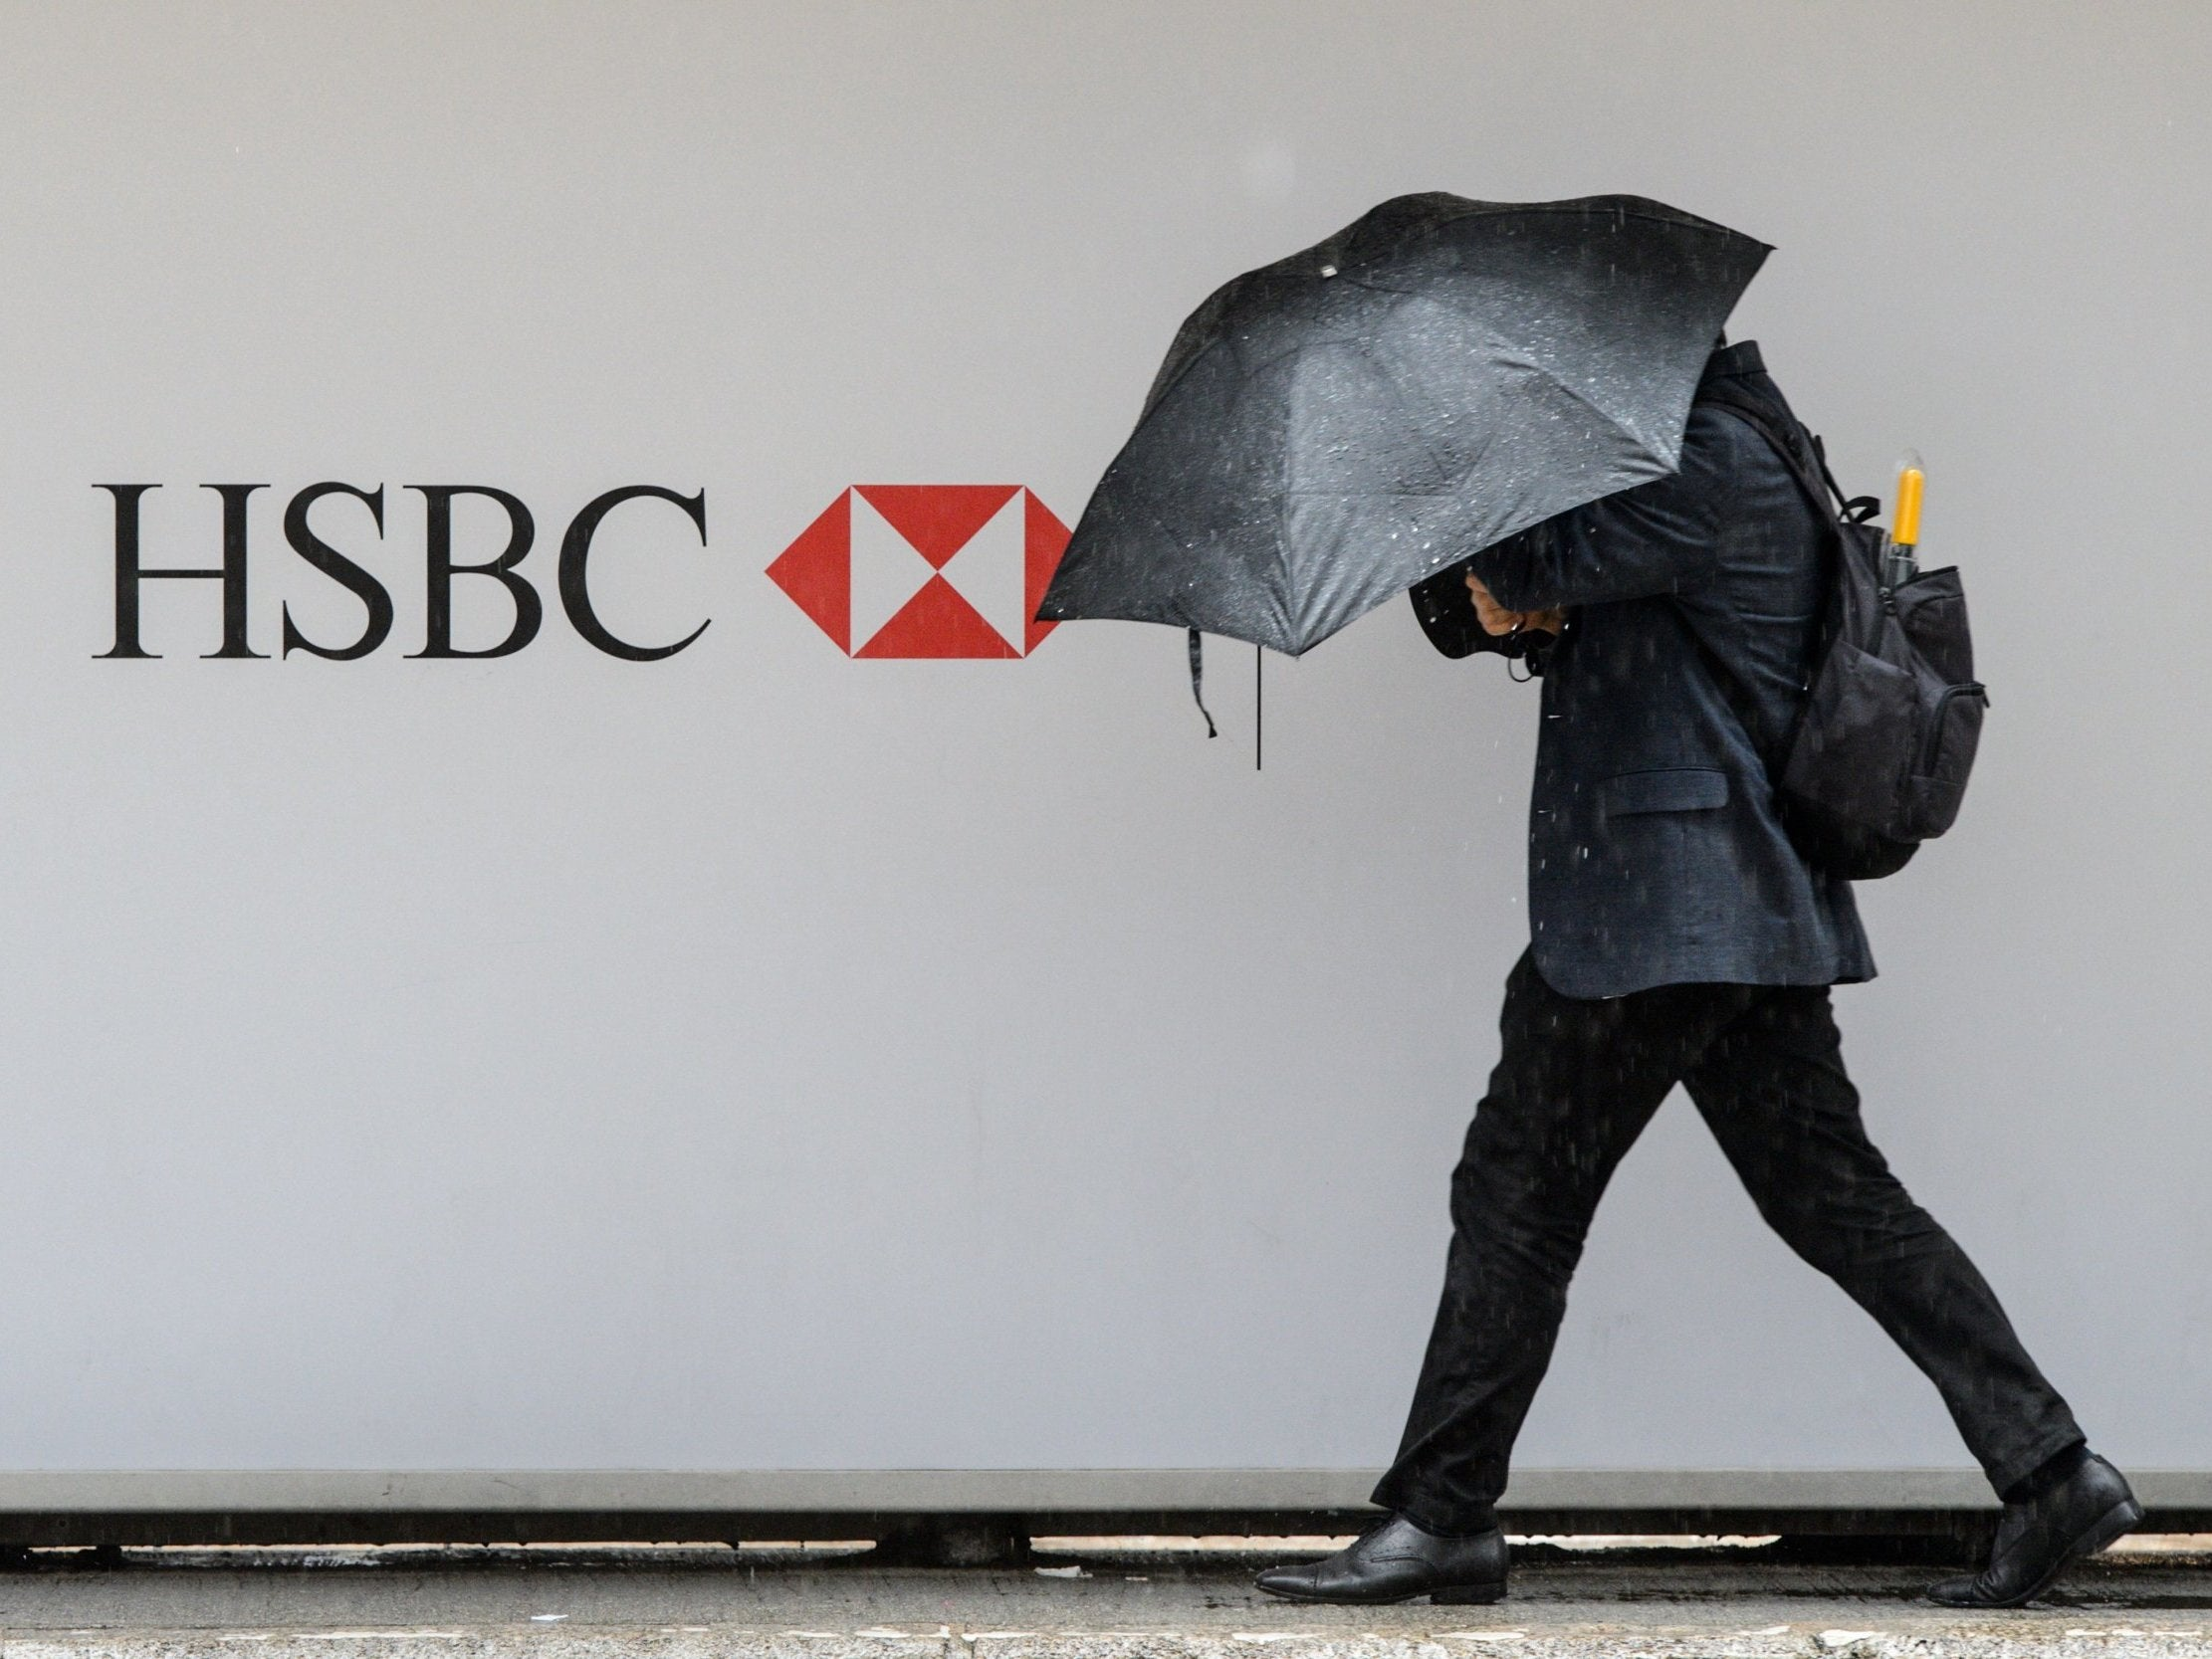 HSBC Online Banking Down: Customers Unable to Access Accounts in Outage